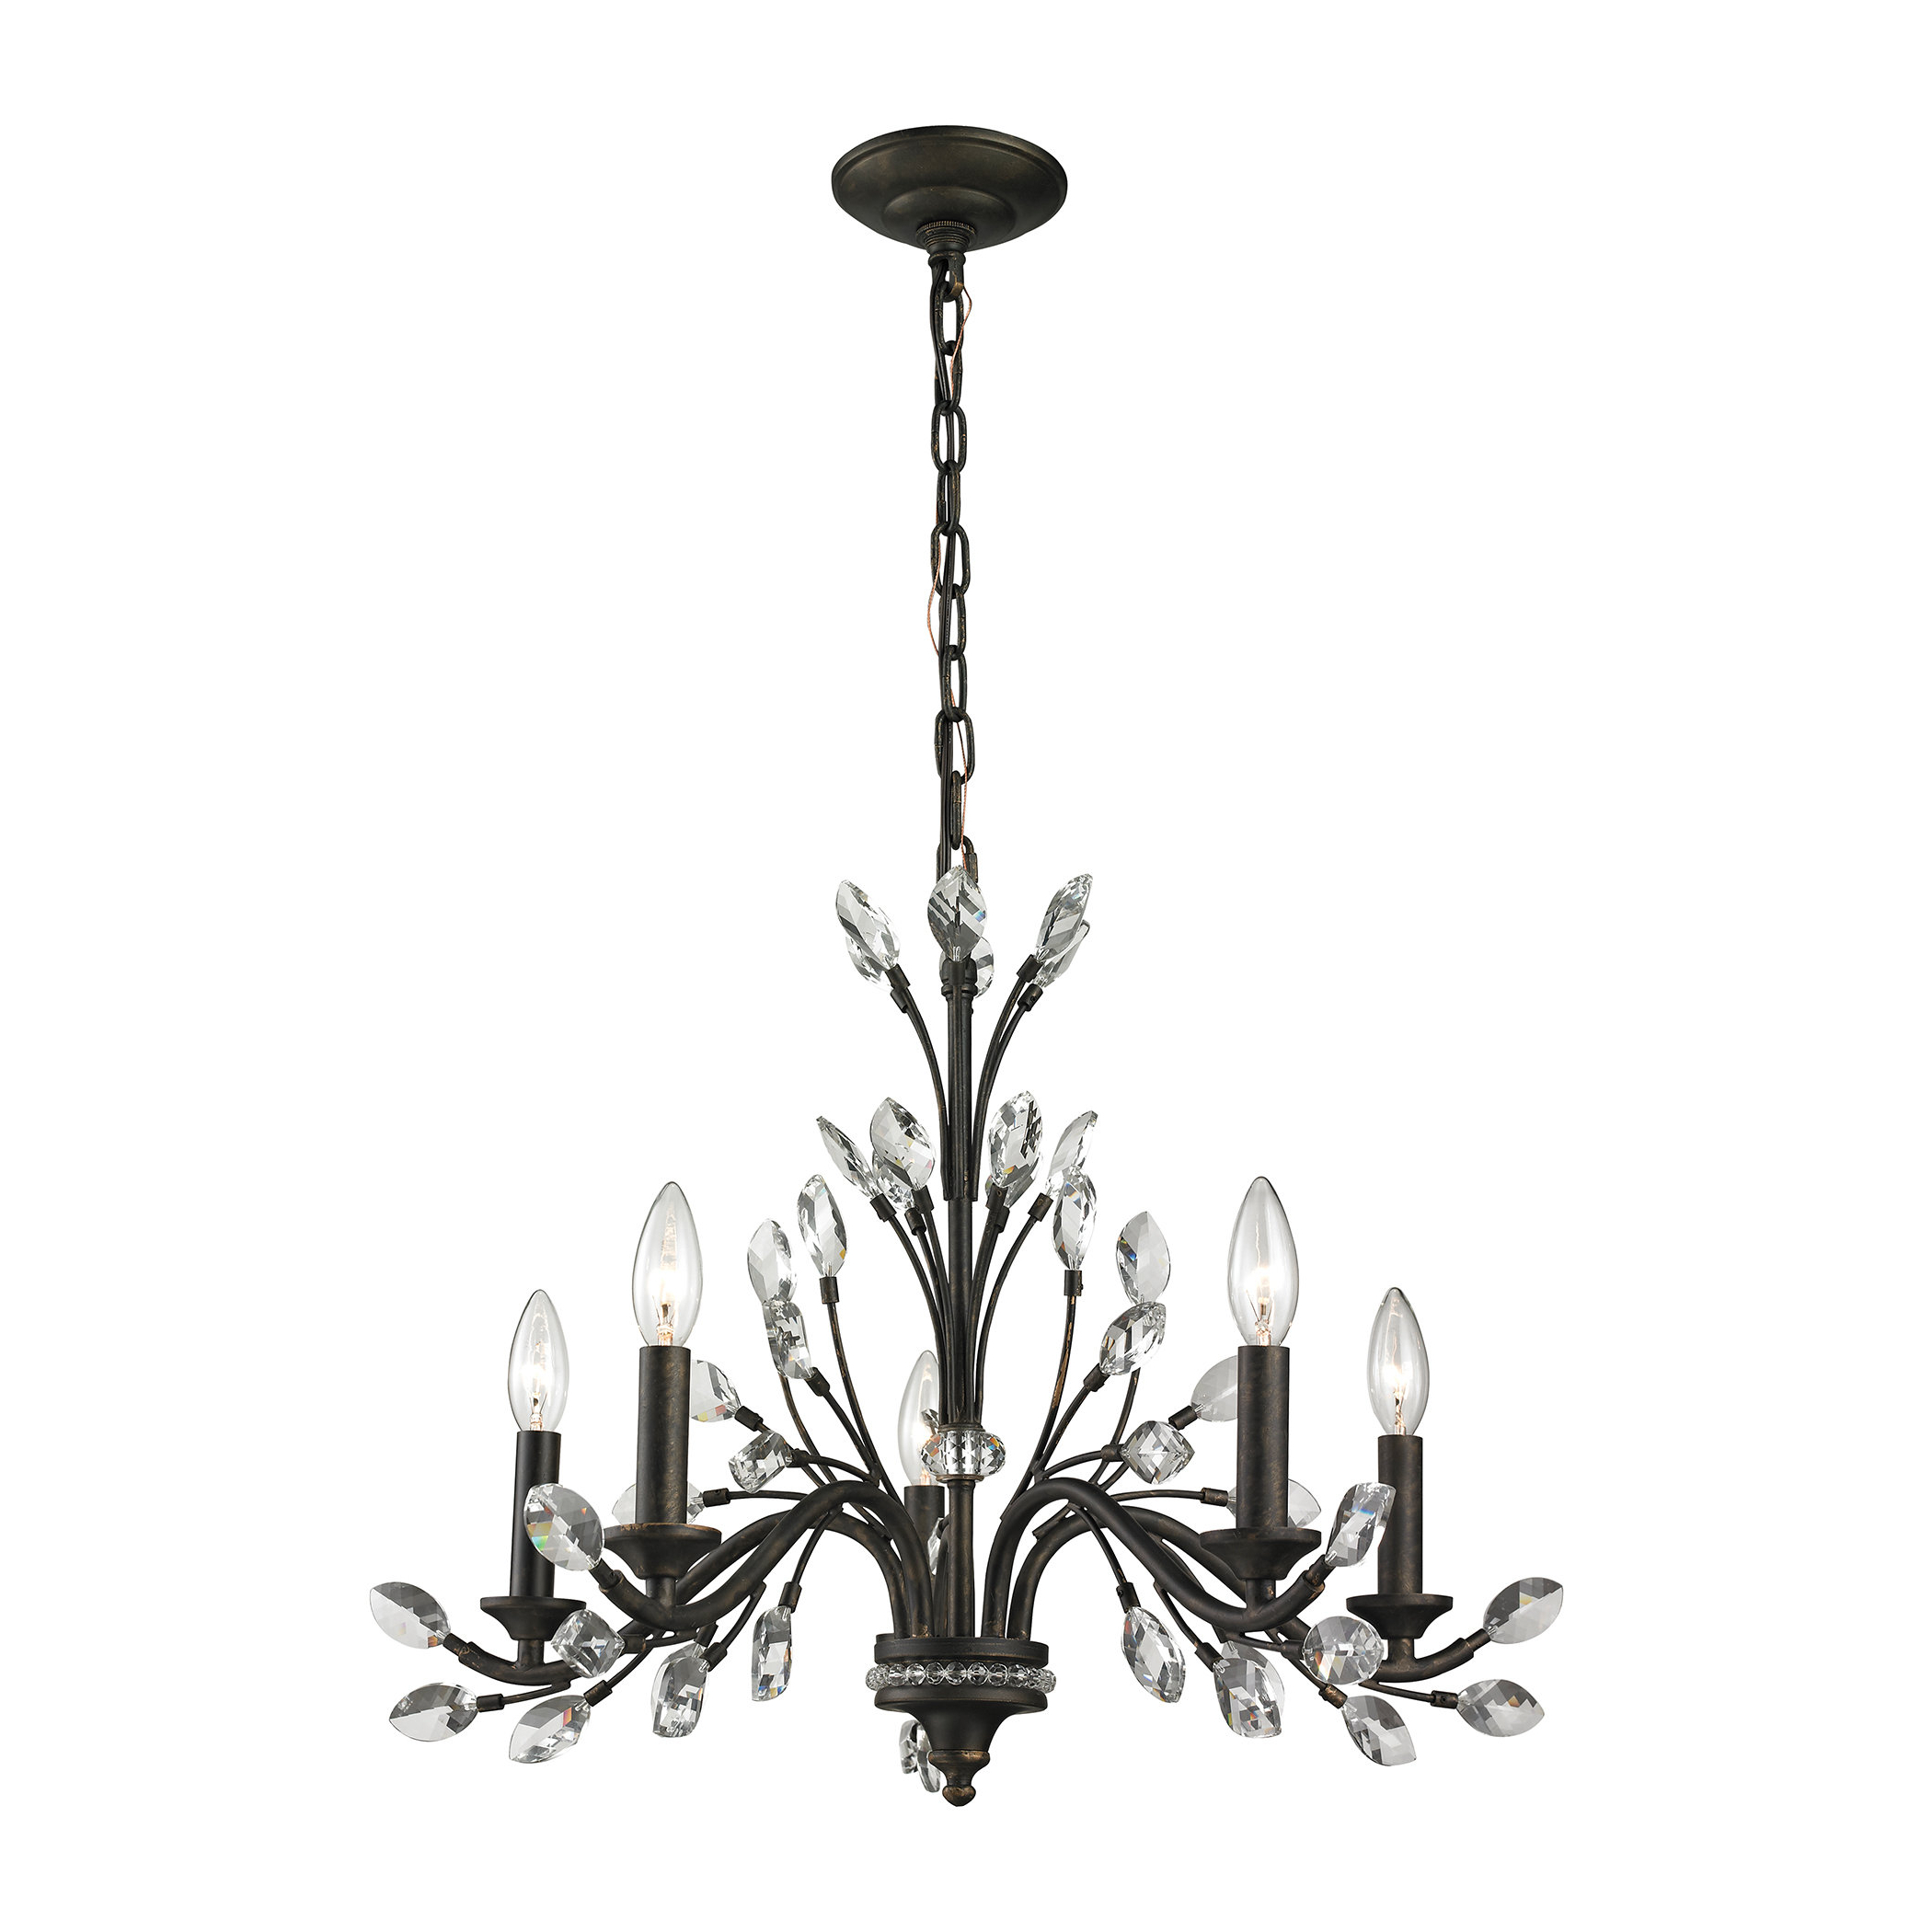 Famous Berger 5 Light Candle Style Chandeliers In Hammel 5 Light Candle Style Chandelier (View 9 of 20)